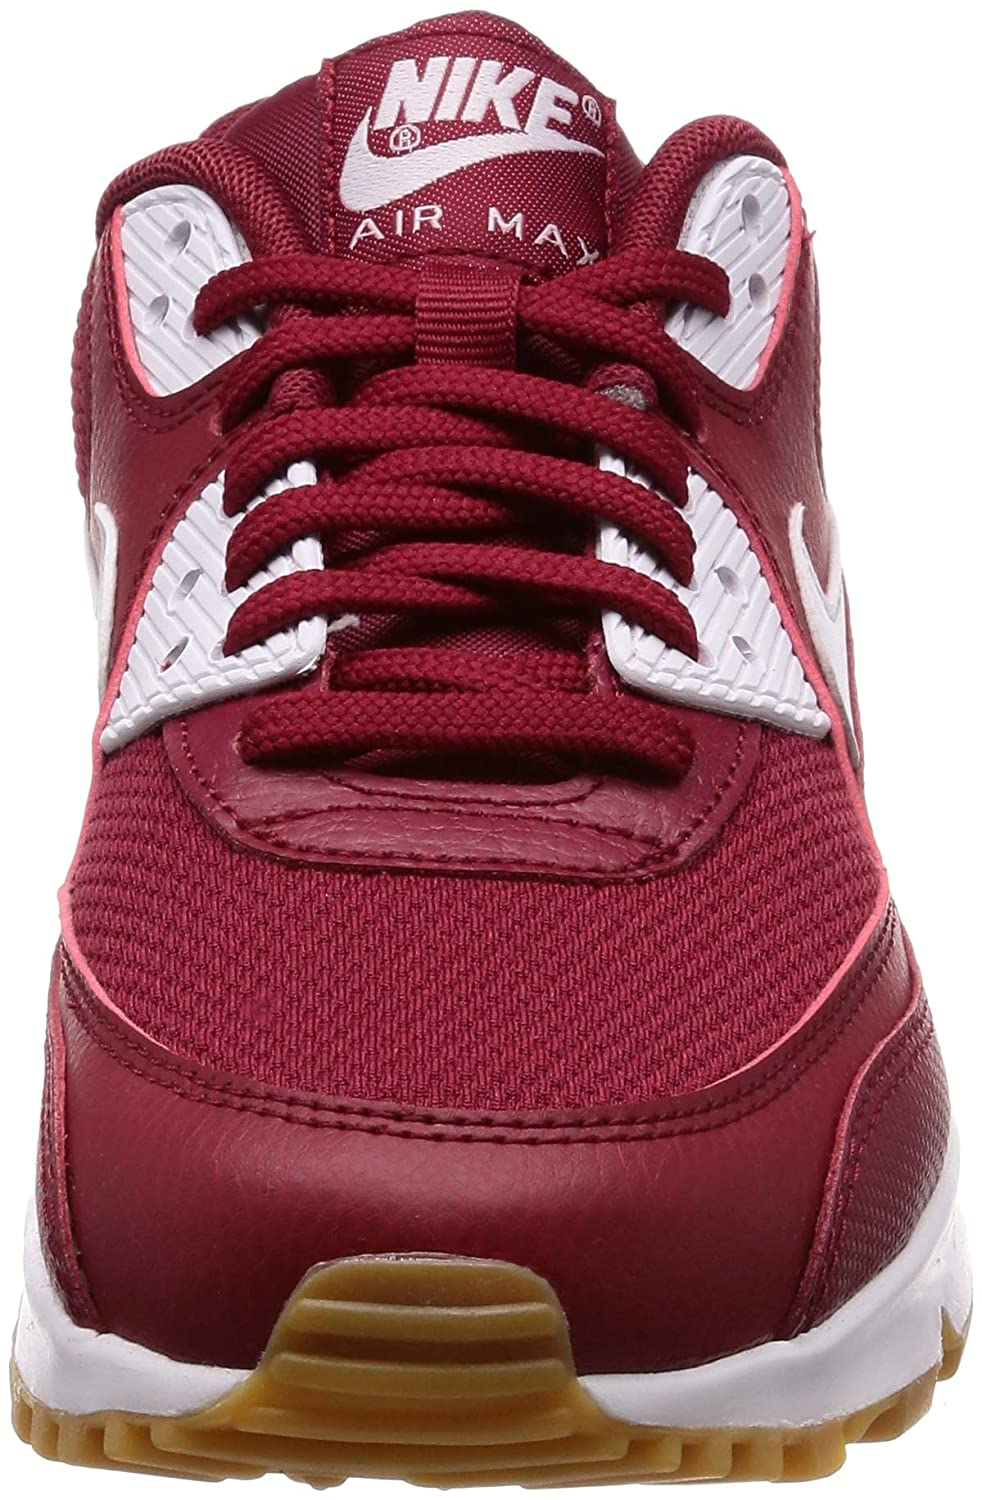 watch 940e4 a08f2 Amazon.com   Nike Women s WMNS Air Max 90 Trainers   Running